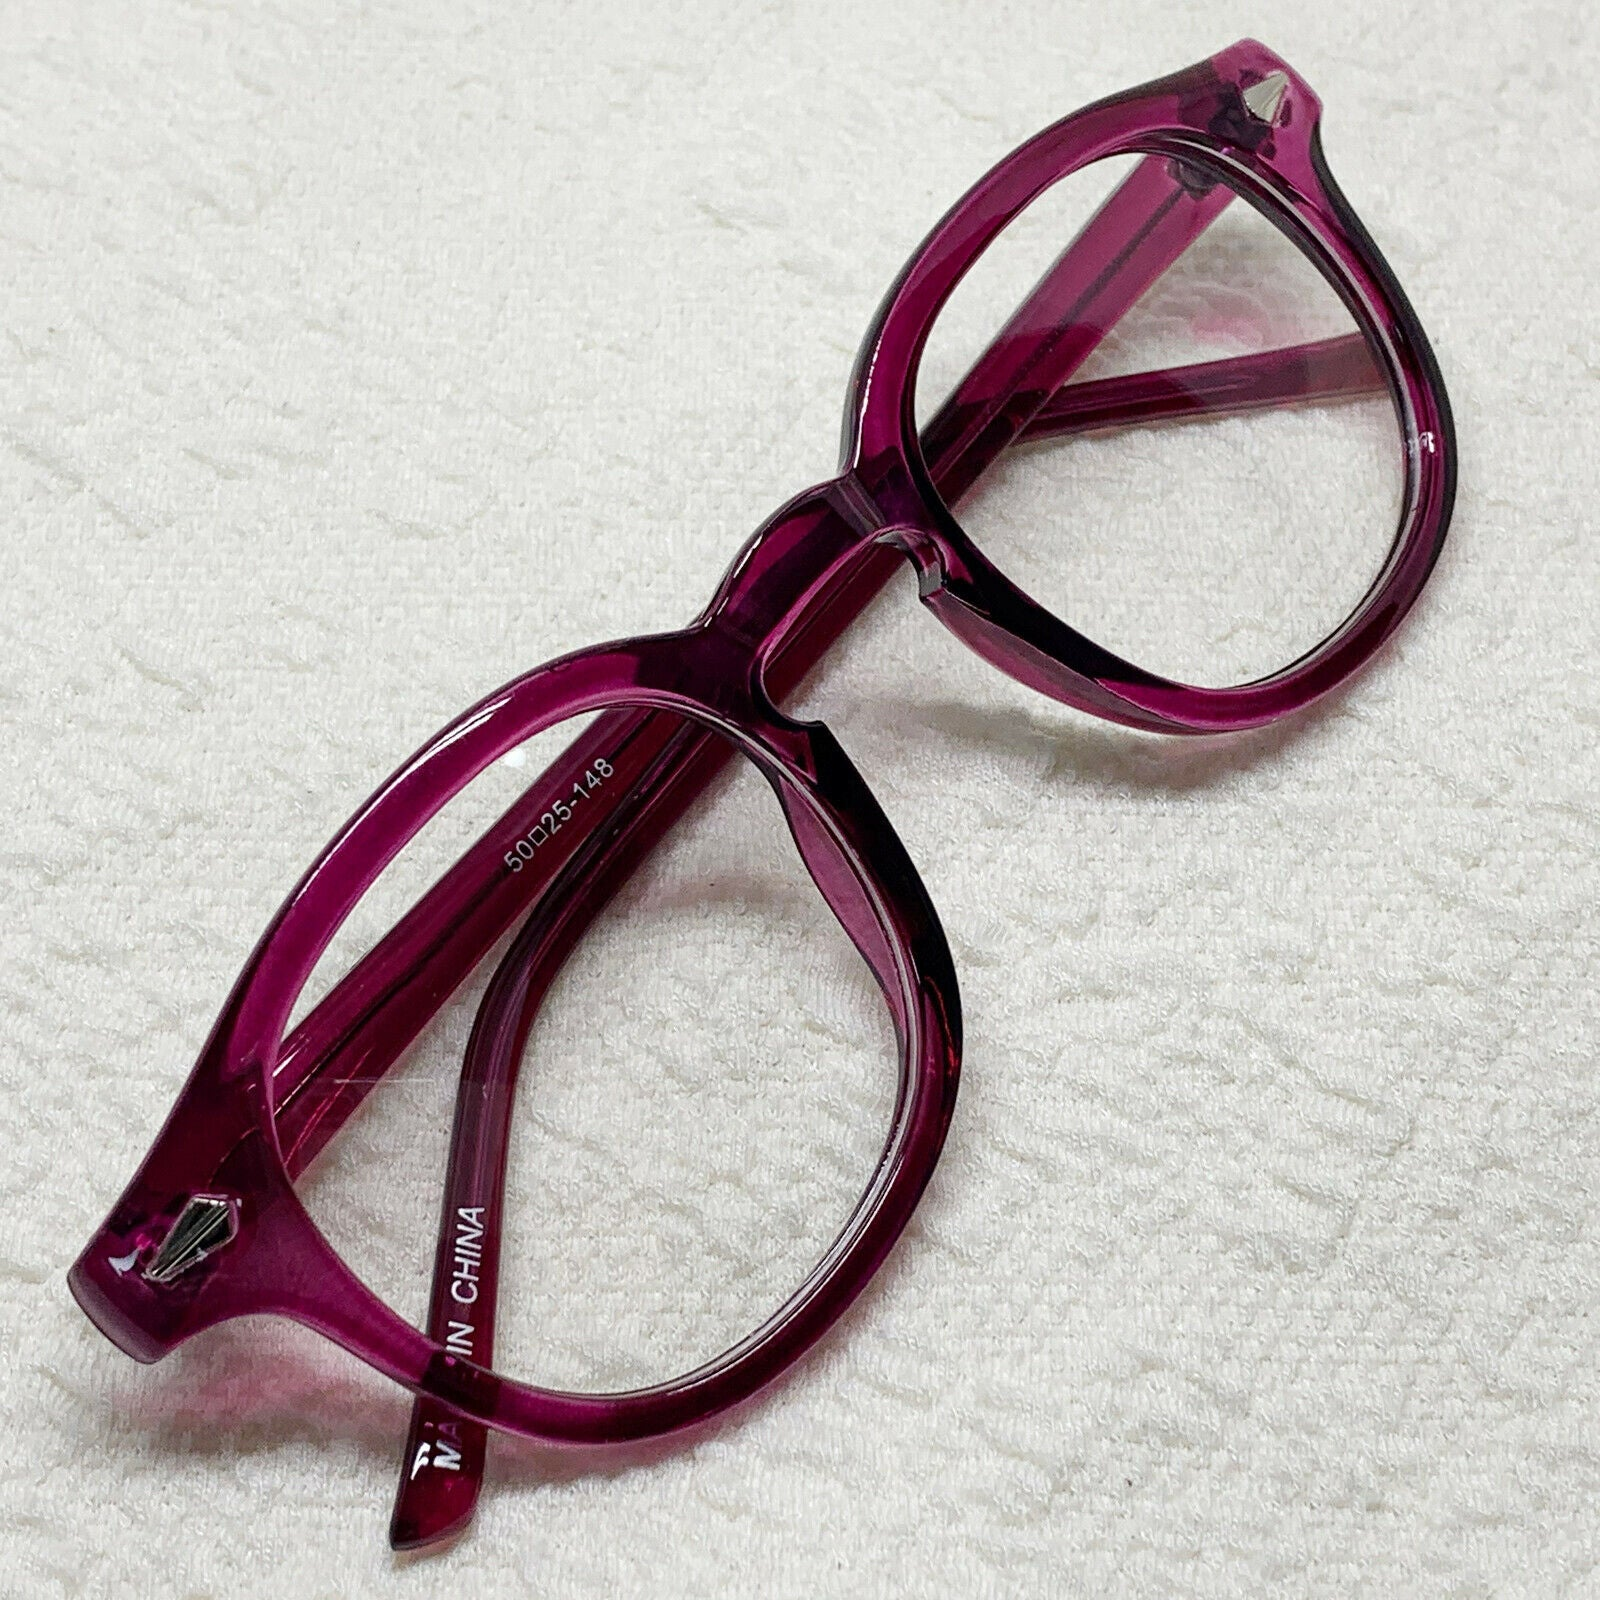 ENCACC Nerd Geek Oversized Glasses Vintage Eye-wear Inspired Horn Rim Frame Purple 1028 - ENCACC